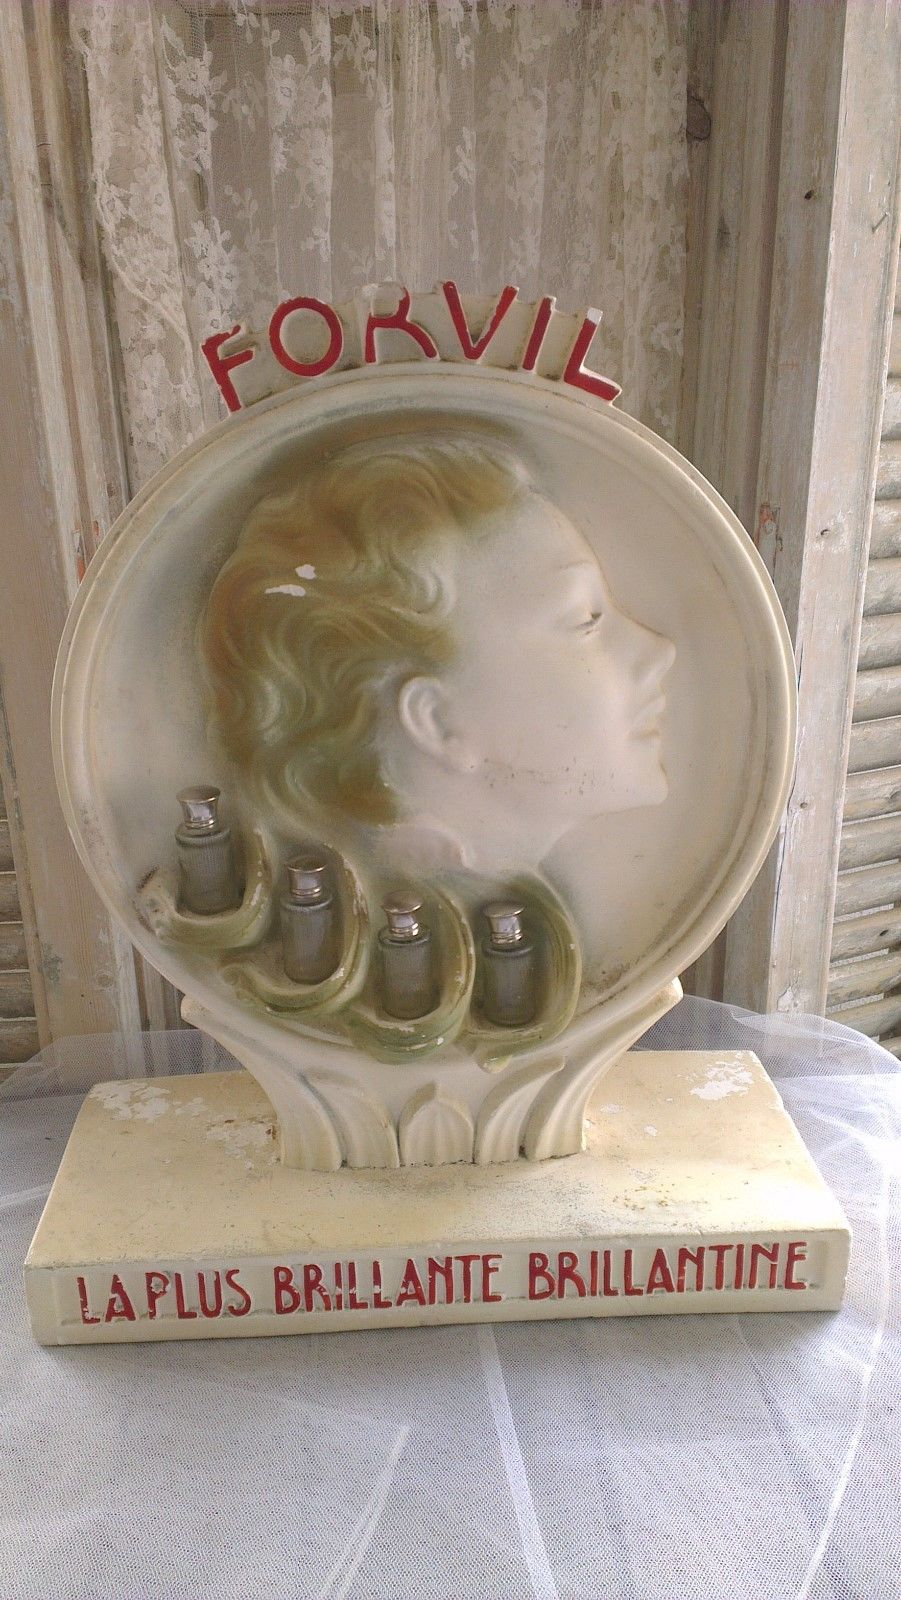 Marktplaats Paspop Vintage Advertising Display:forvil - Diverza